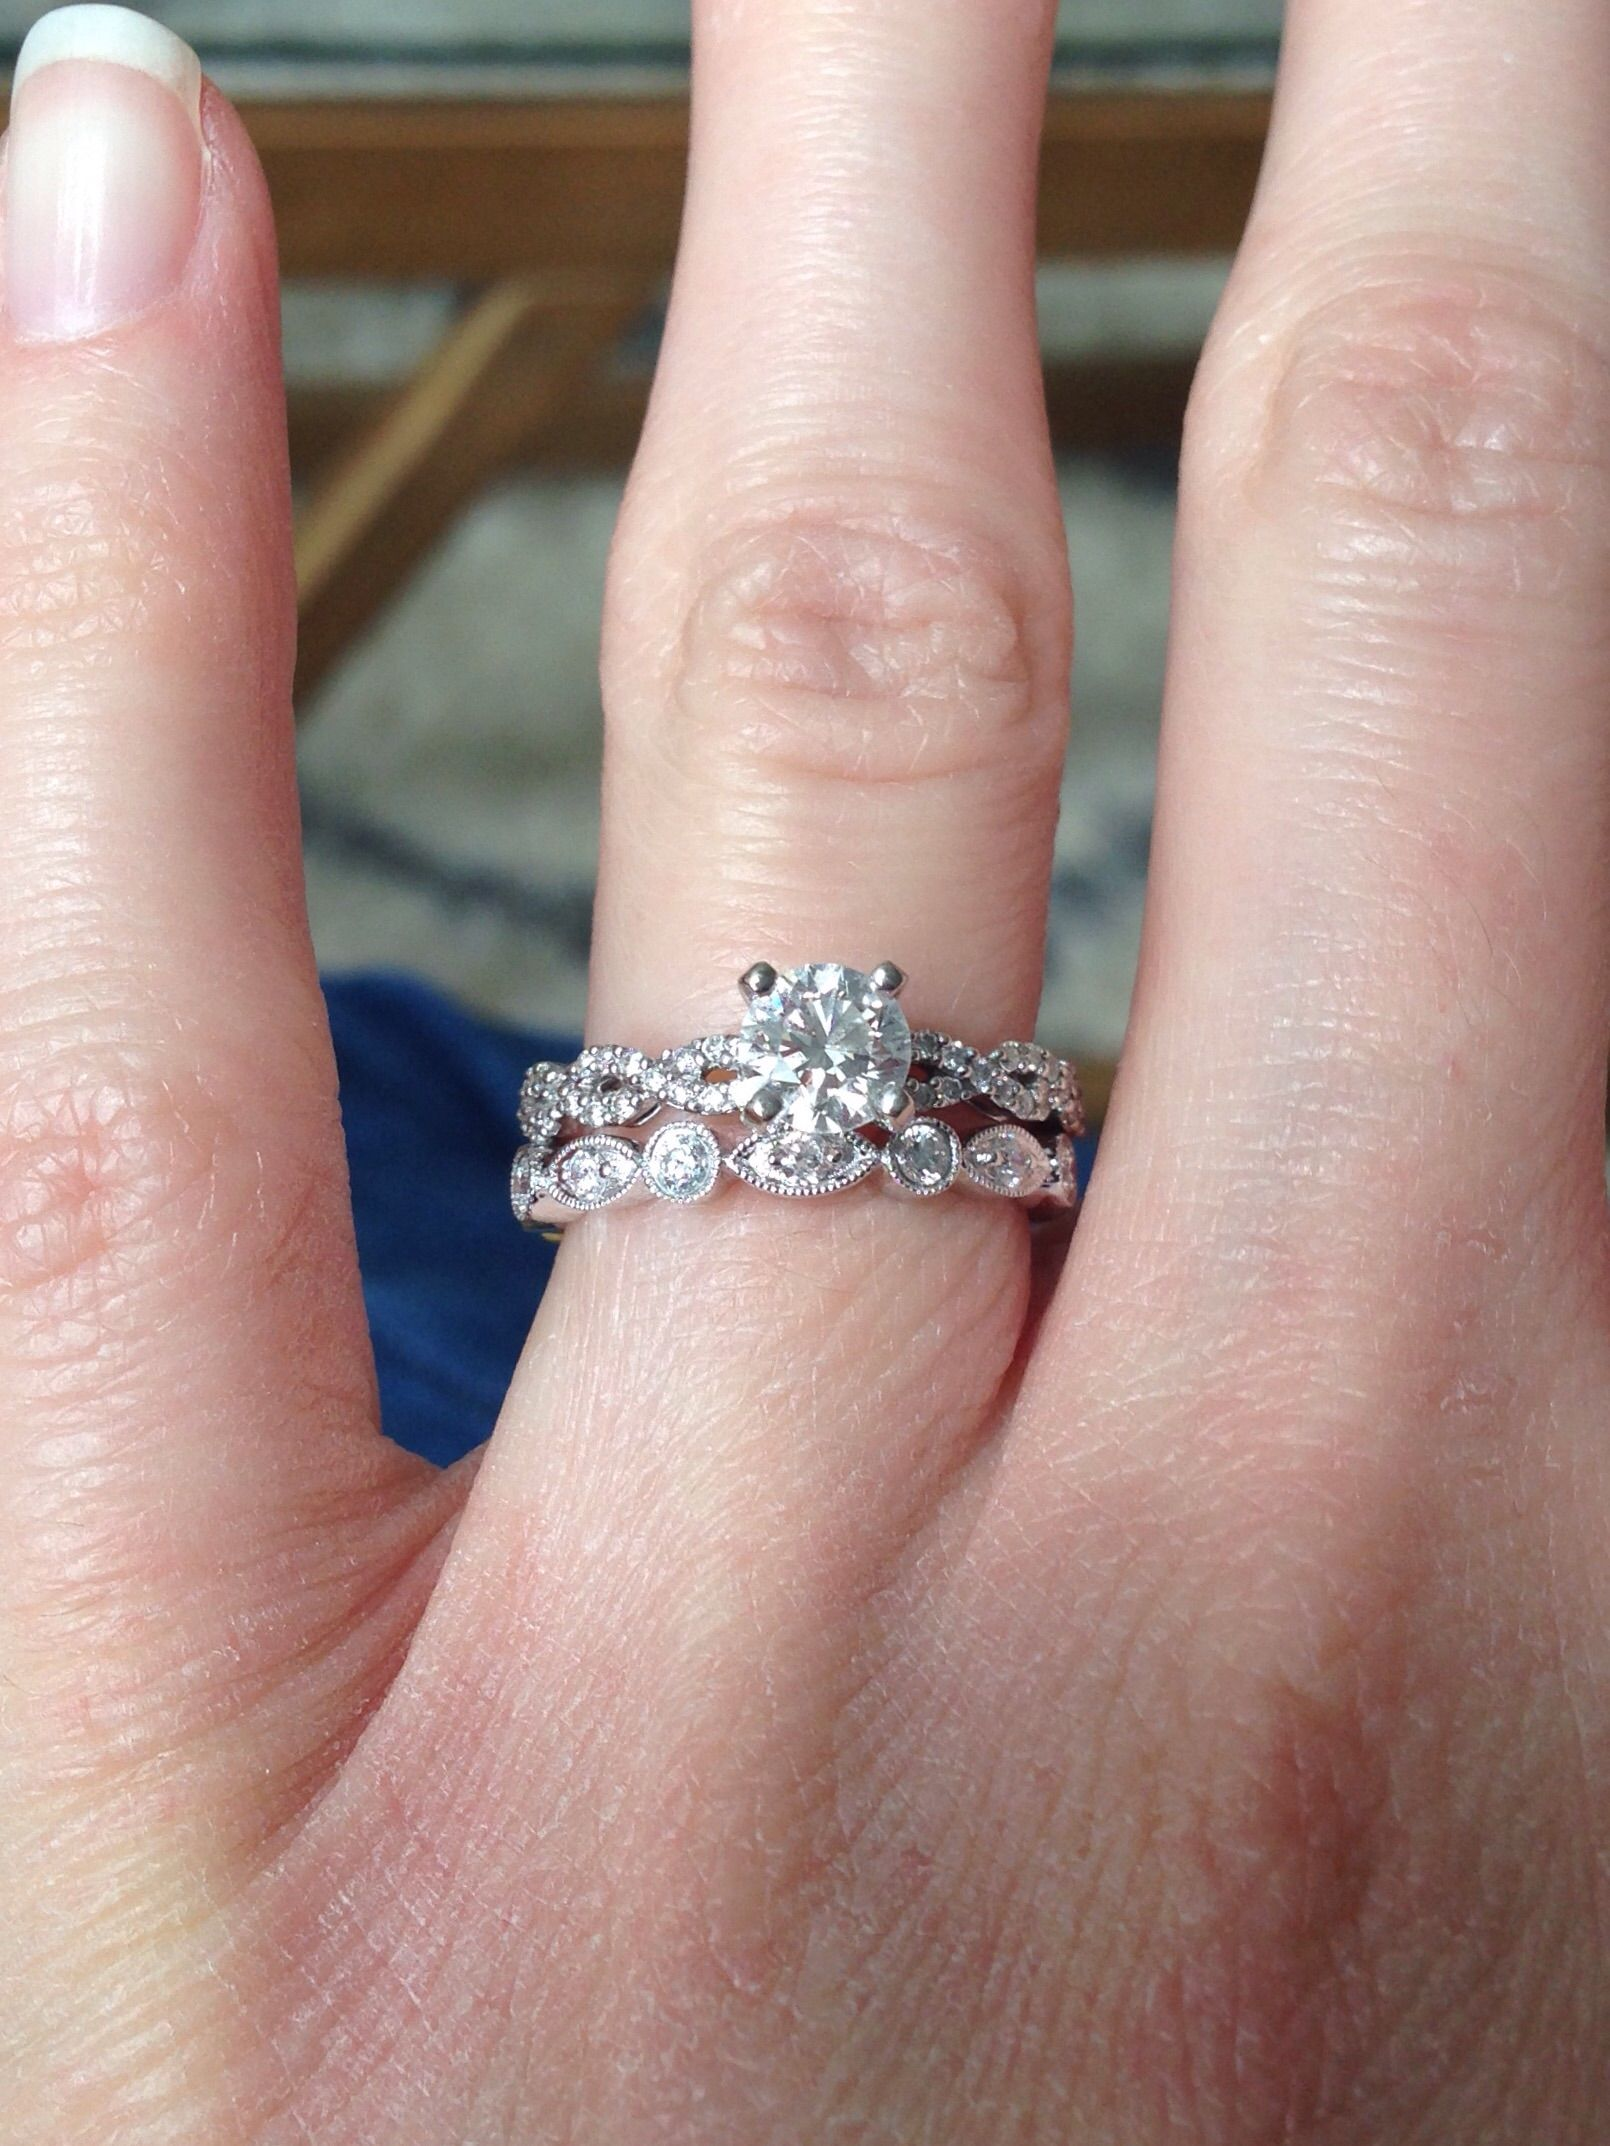 Show me your mismatched ring sets — pic HEAVY - Weddingbee | Page 10 ...